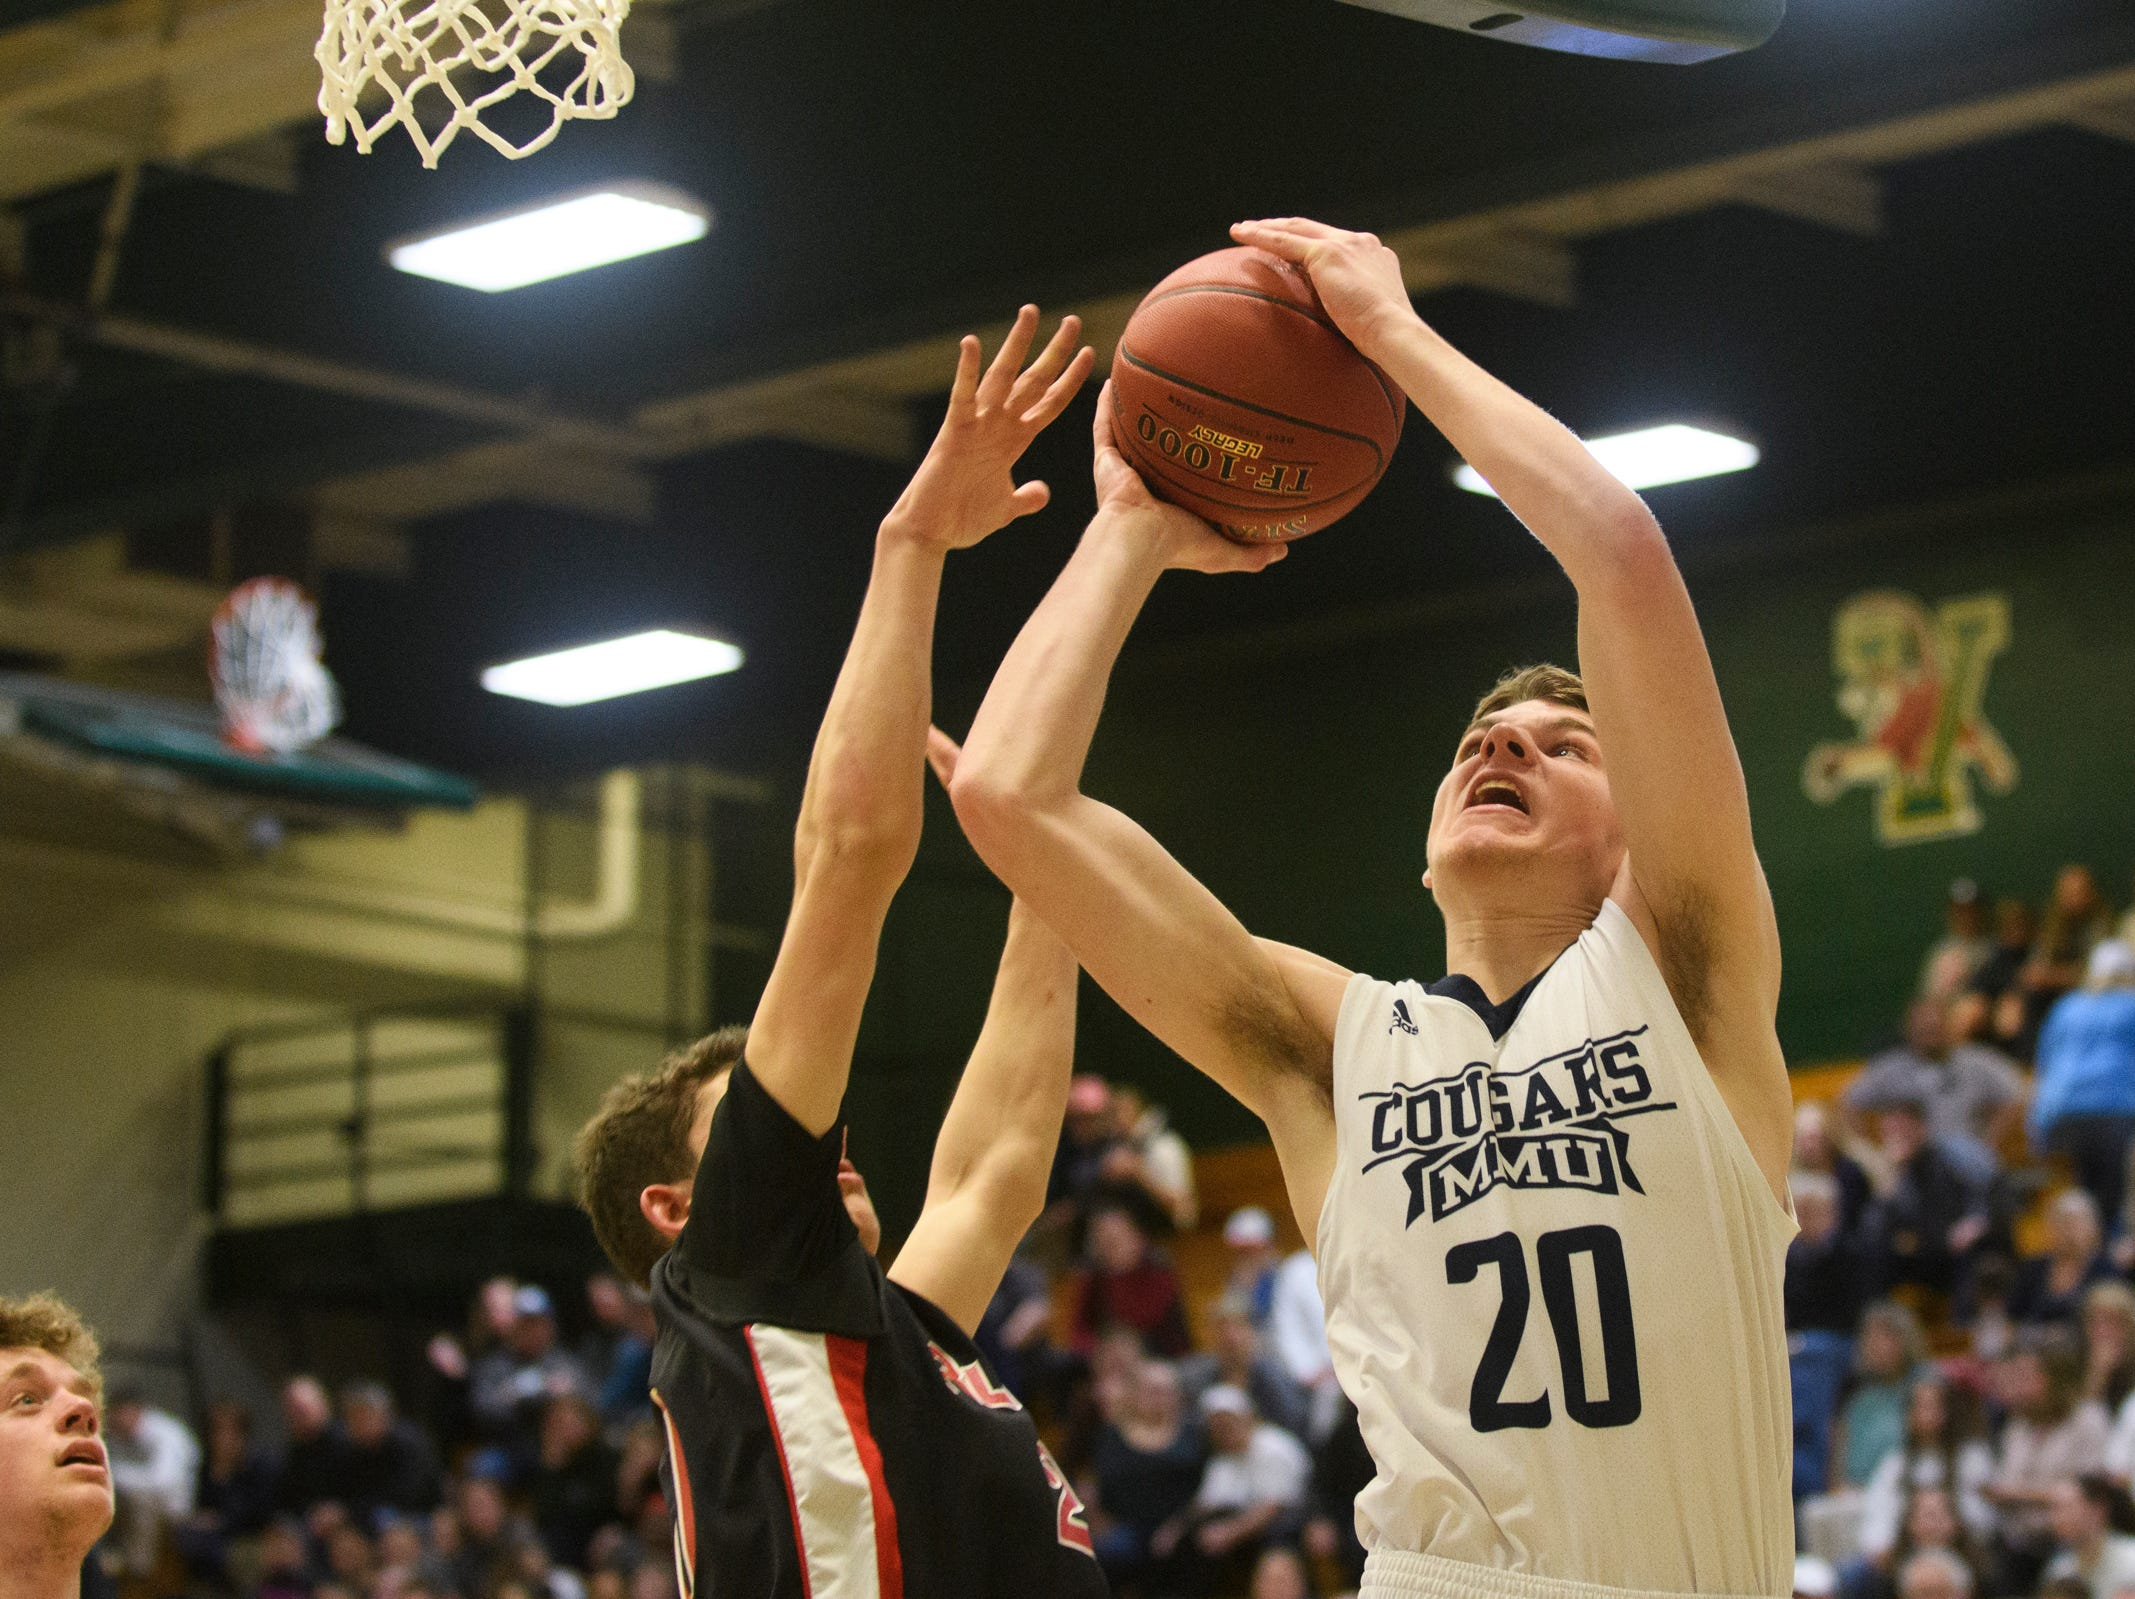 MMU's Connor Philbrick (20) leaps to take a shot during the boys DI semi final basketball game between the Rutland Raiders and the Mount Mansfield Cougars at Patrick Gym on Monday night March 11, 2019 in Burlington, Vermont.